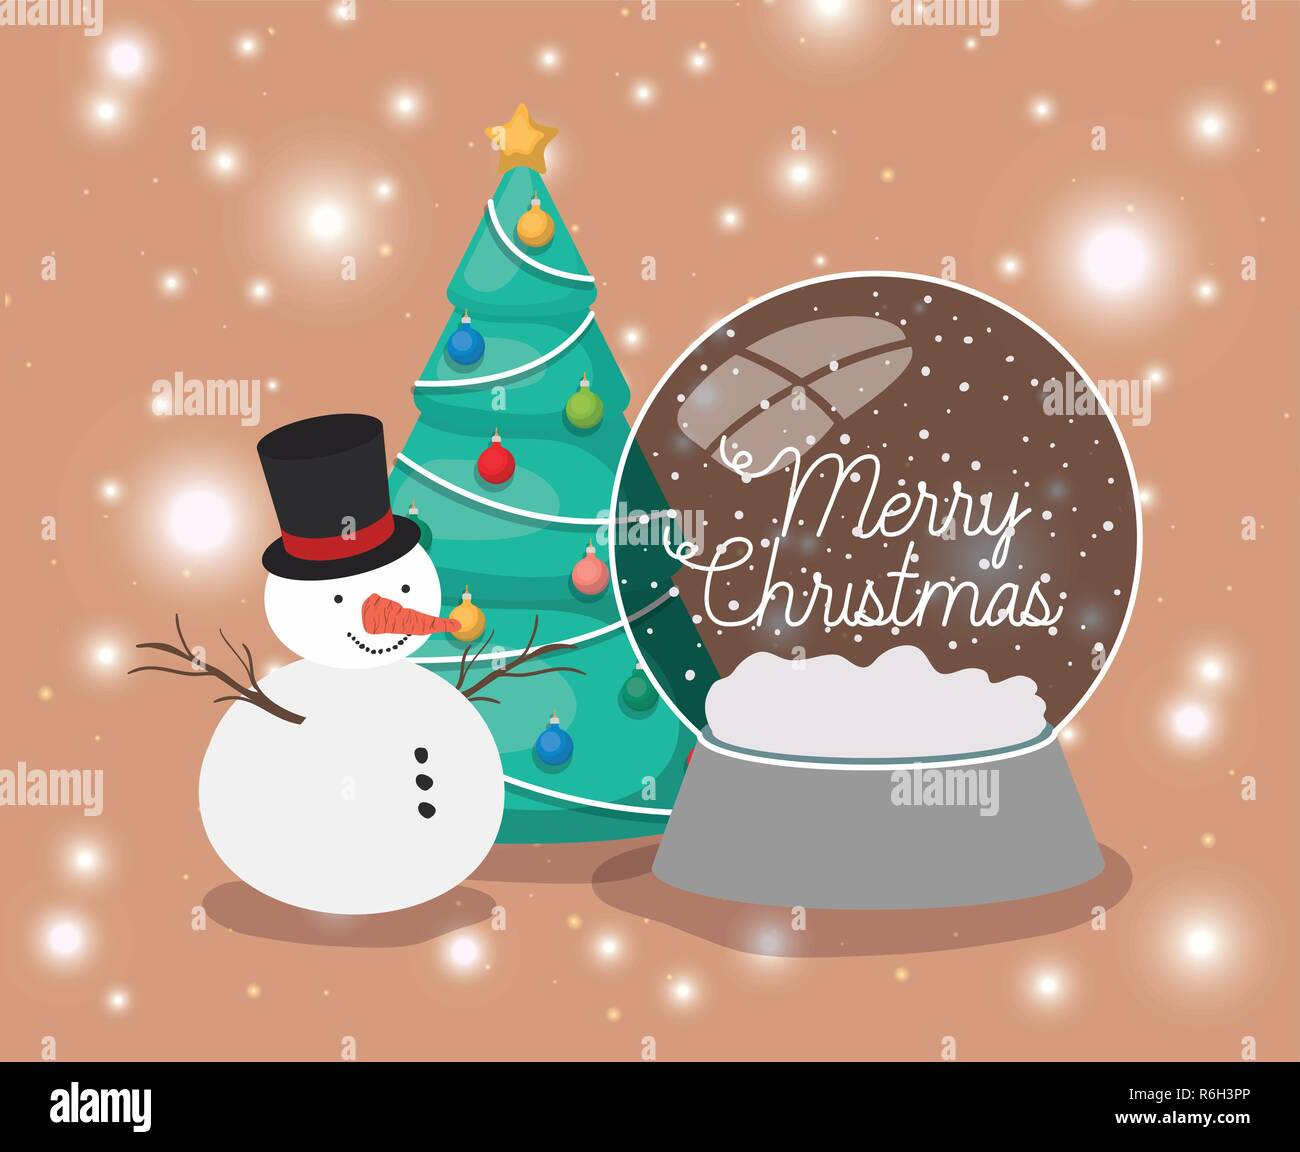 Mery Christmas.Mery Christmas Card Stock Photos Mery Christmas Card Stock